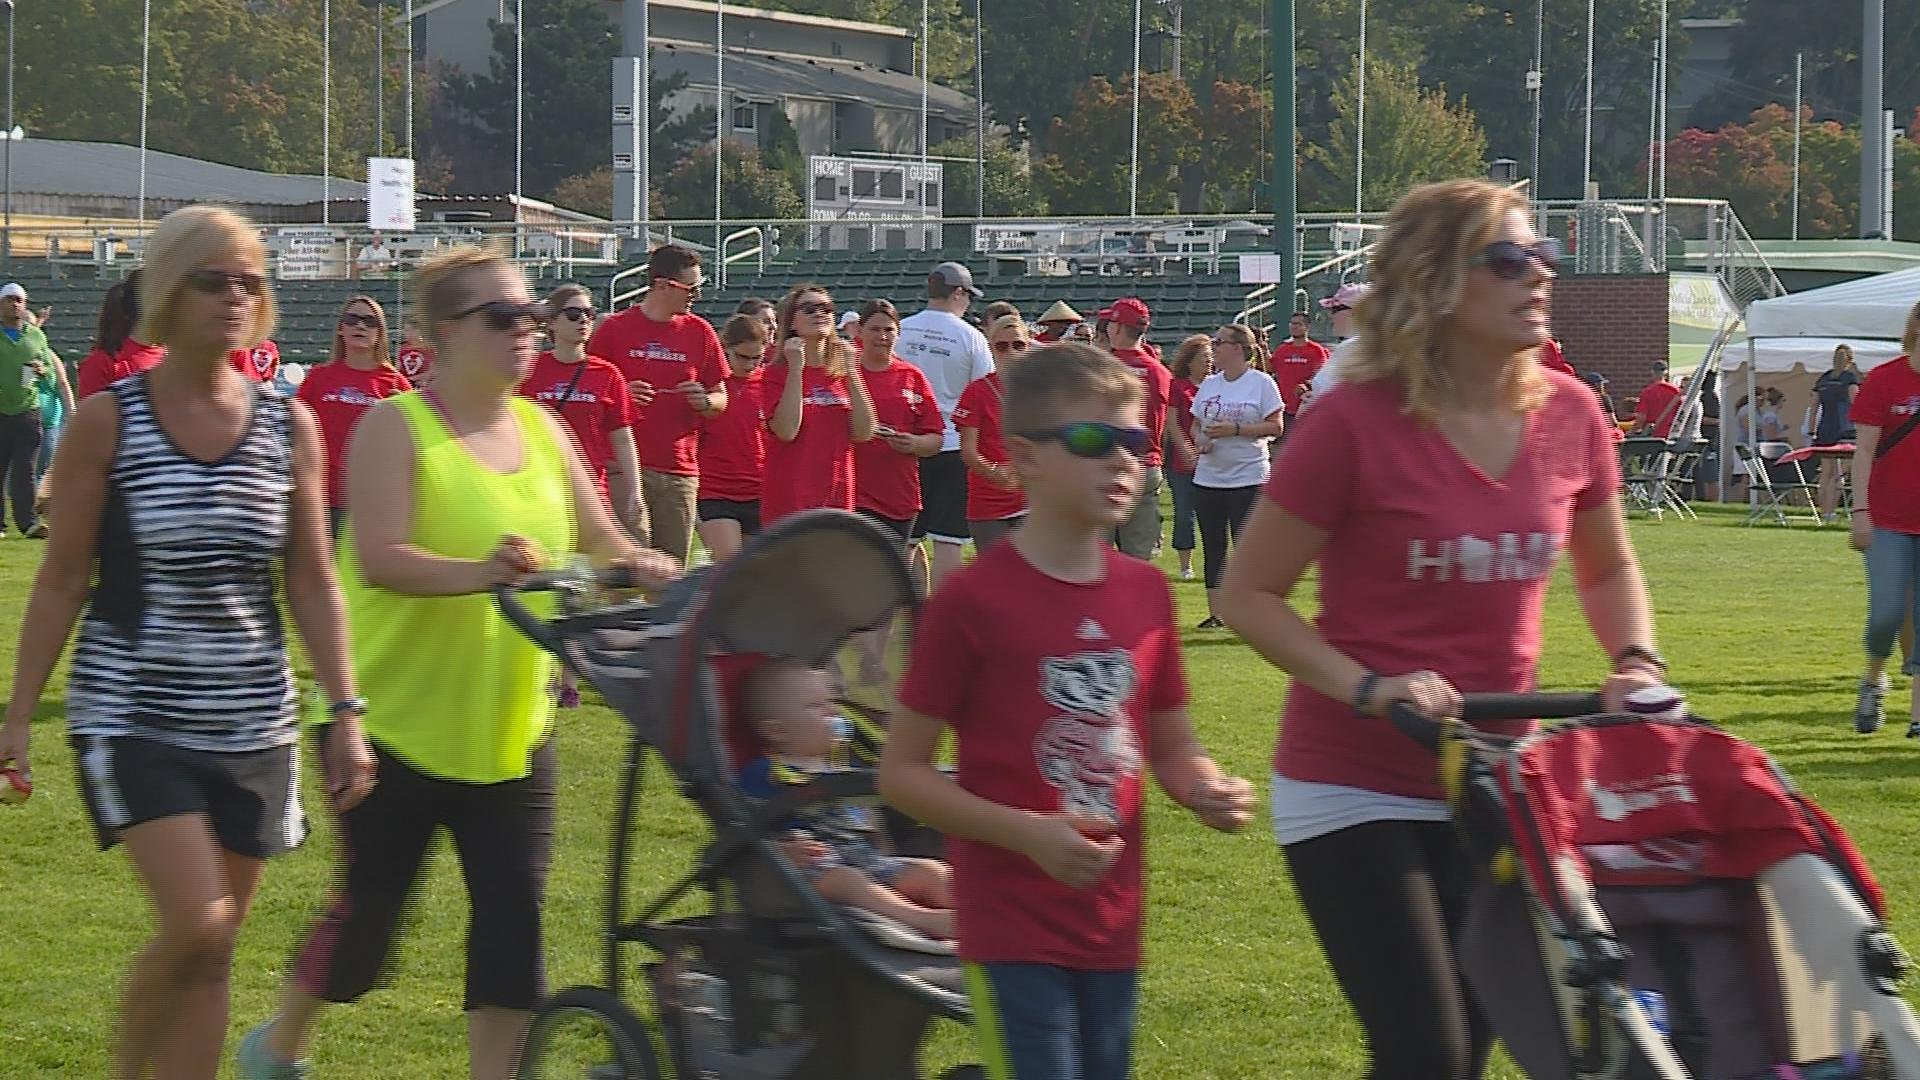 People participating in the Heart Walk